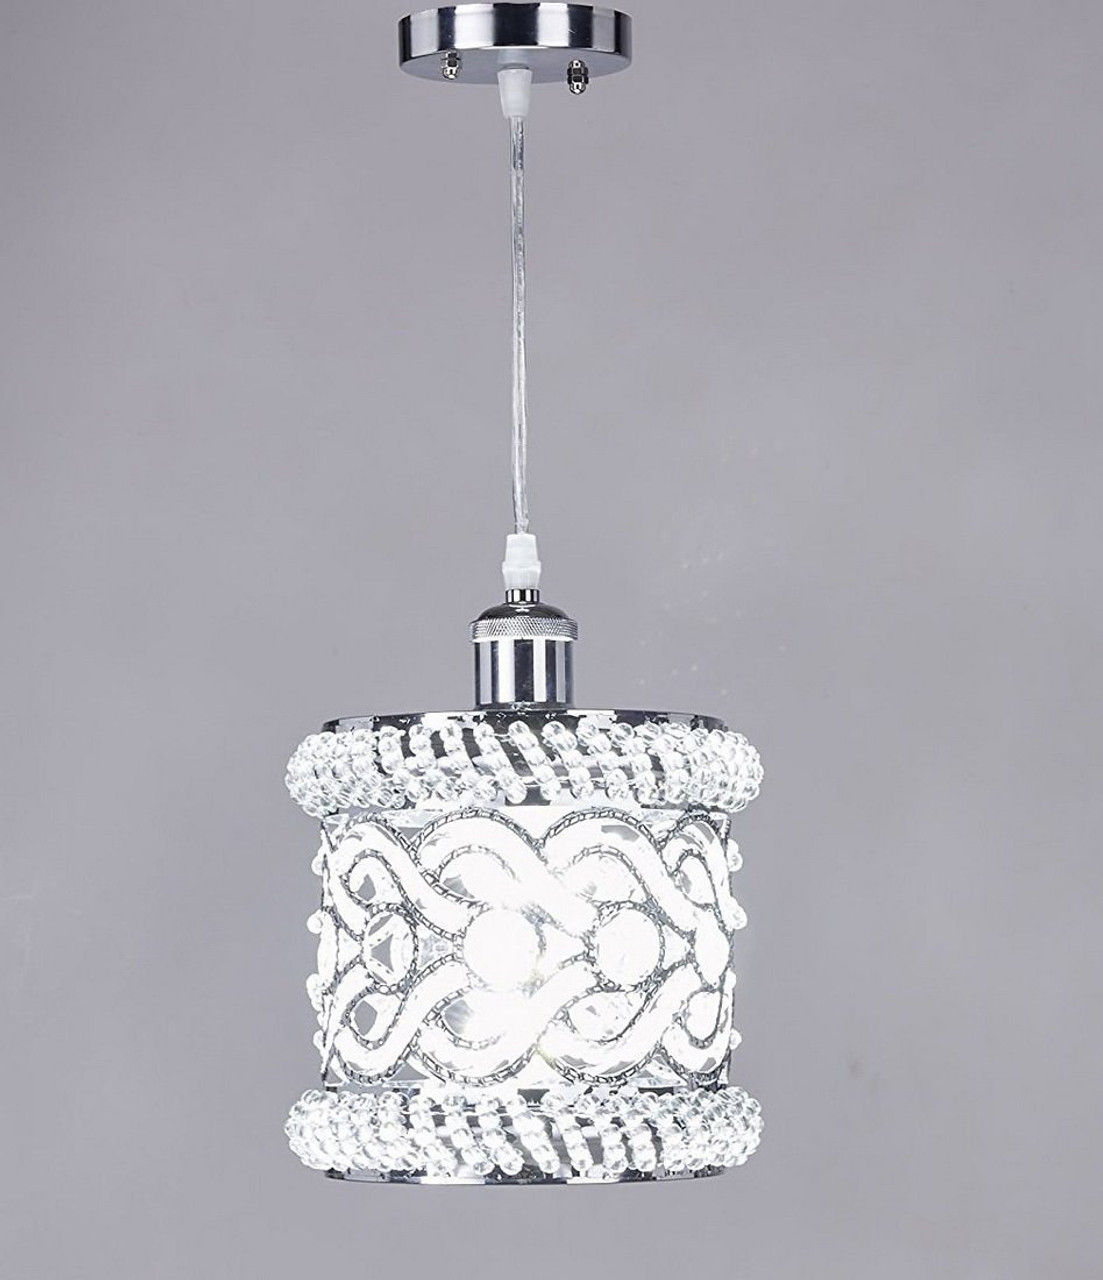 New galaxy 1 light chrome finish metal shade crystal chandelier hanging pendant ceiling lamp